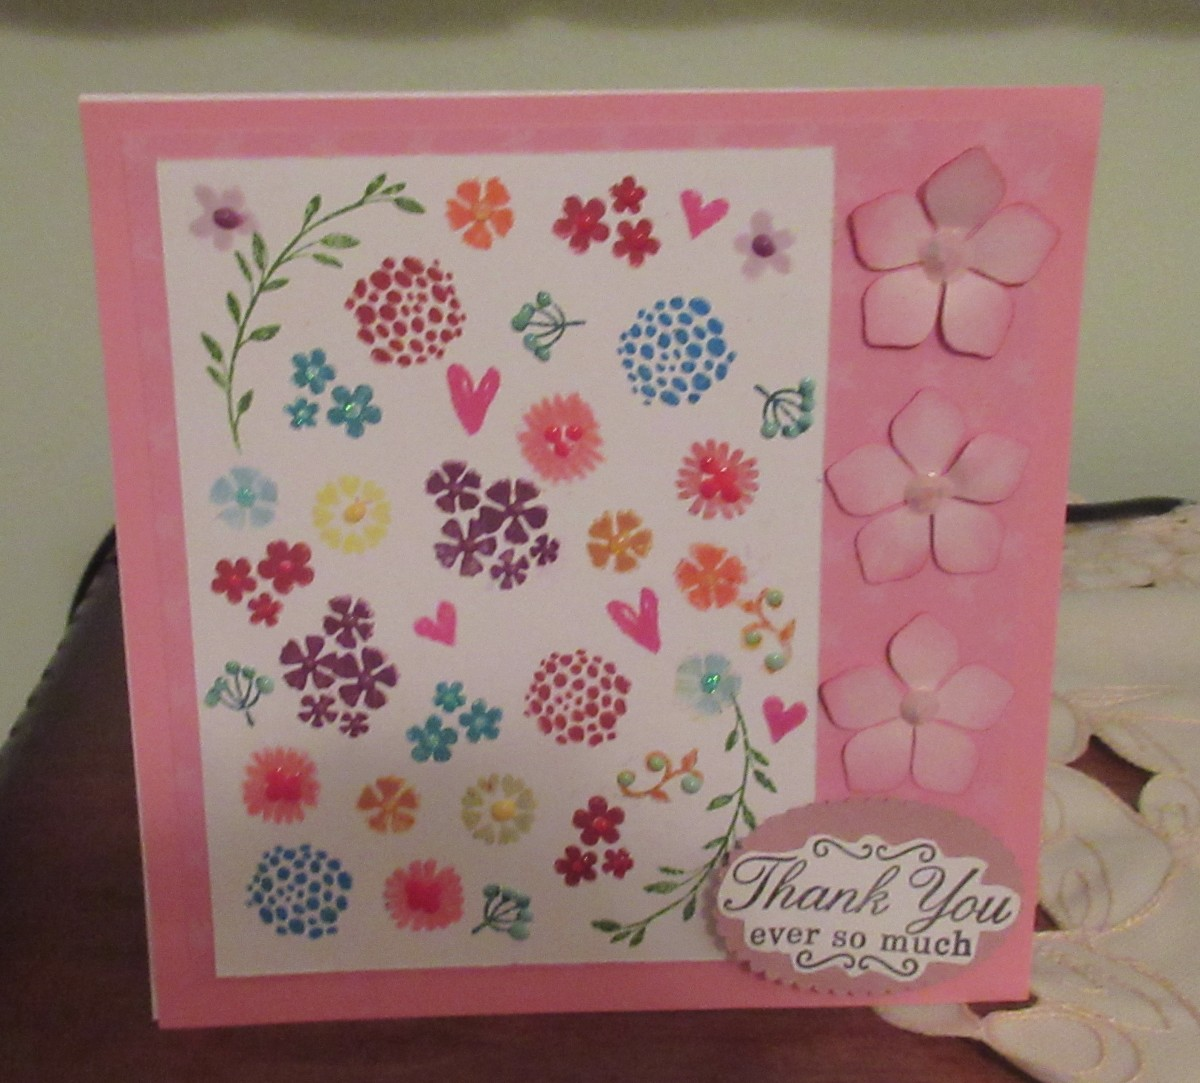 It is so easy to create custom backgrounds as I did on this card with the Misti